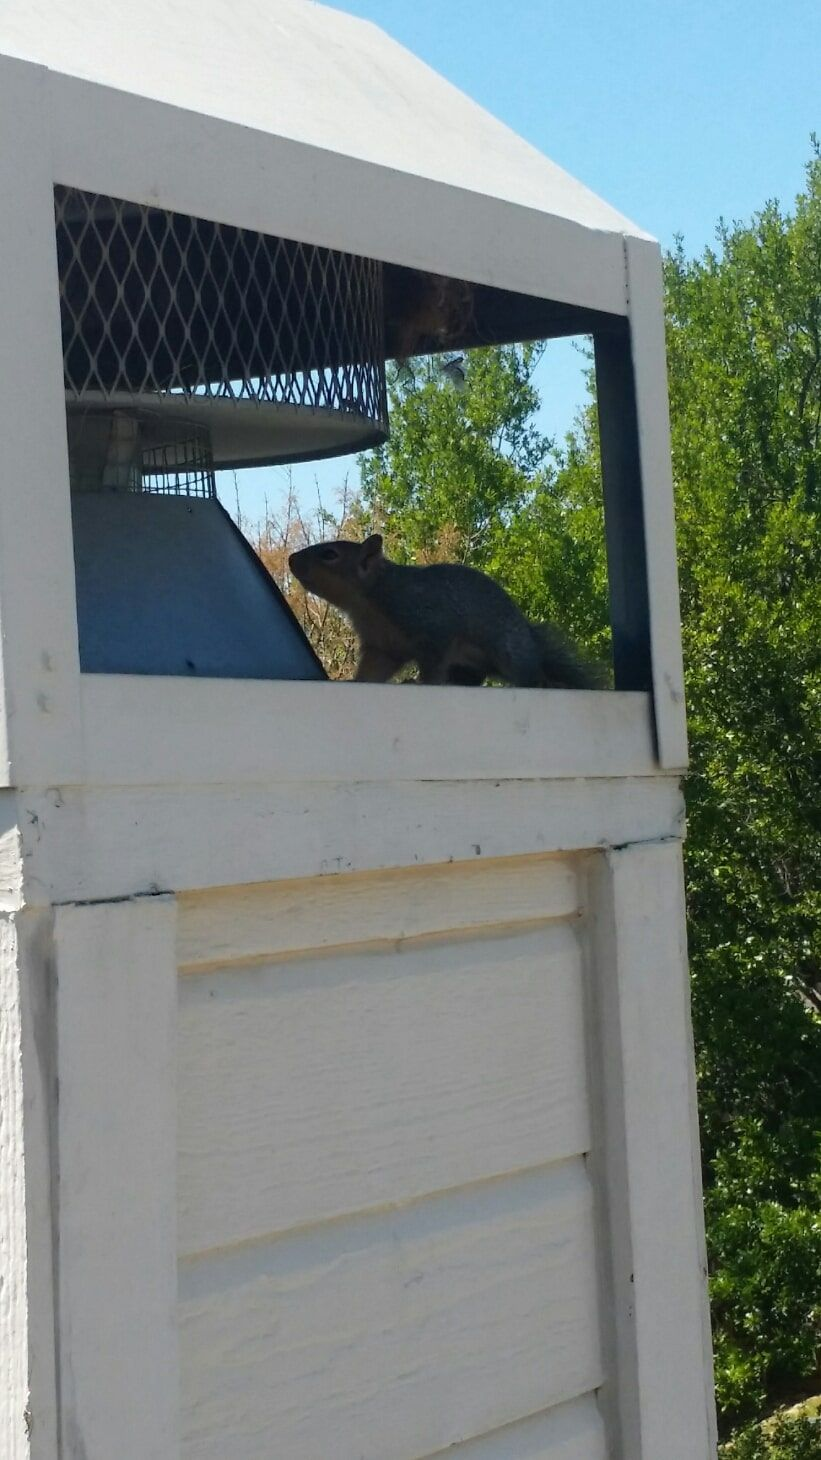 Wildlife Removal Services Houston In 2020 Removal Services How To Remove Wildlife